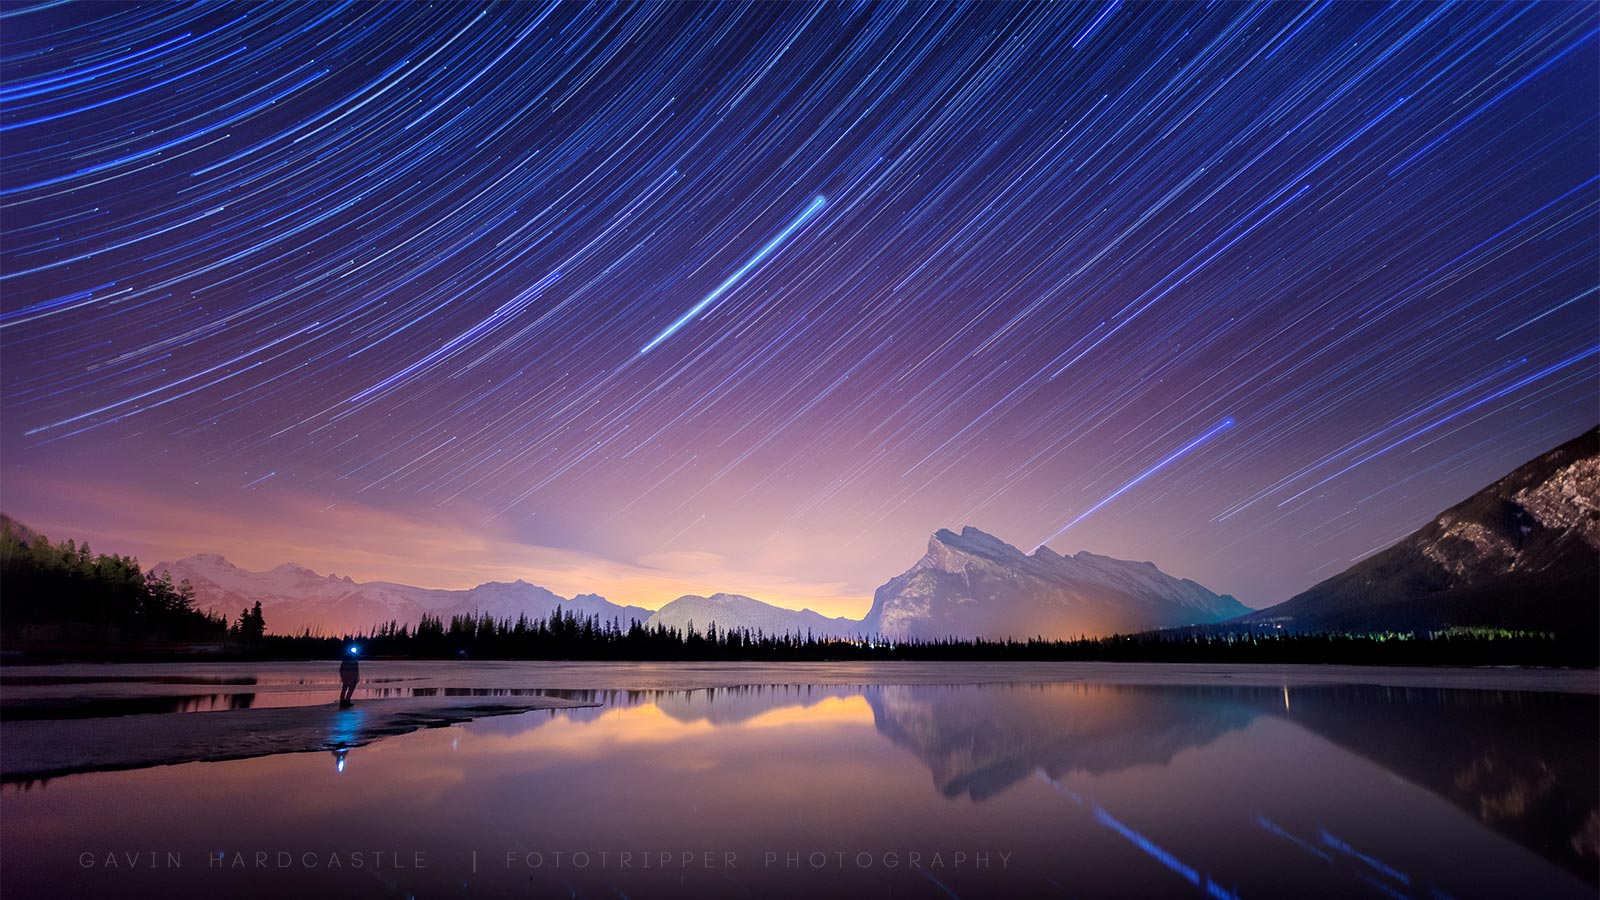 Canadian Rockies Photography Workshop in Banff